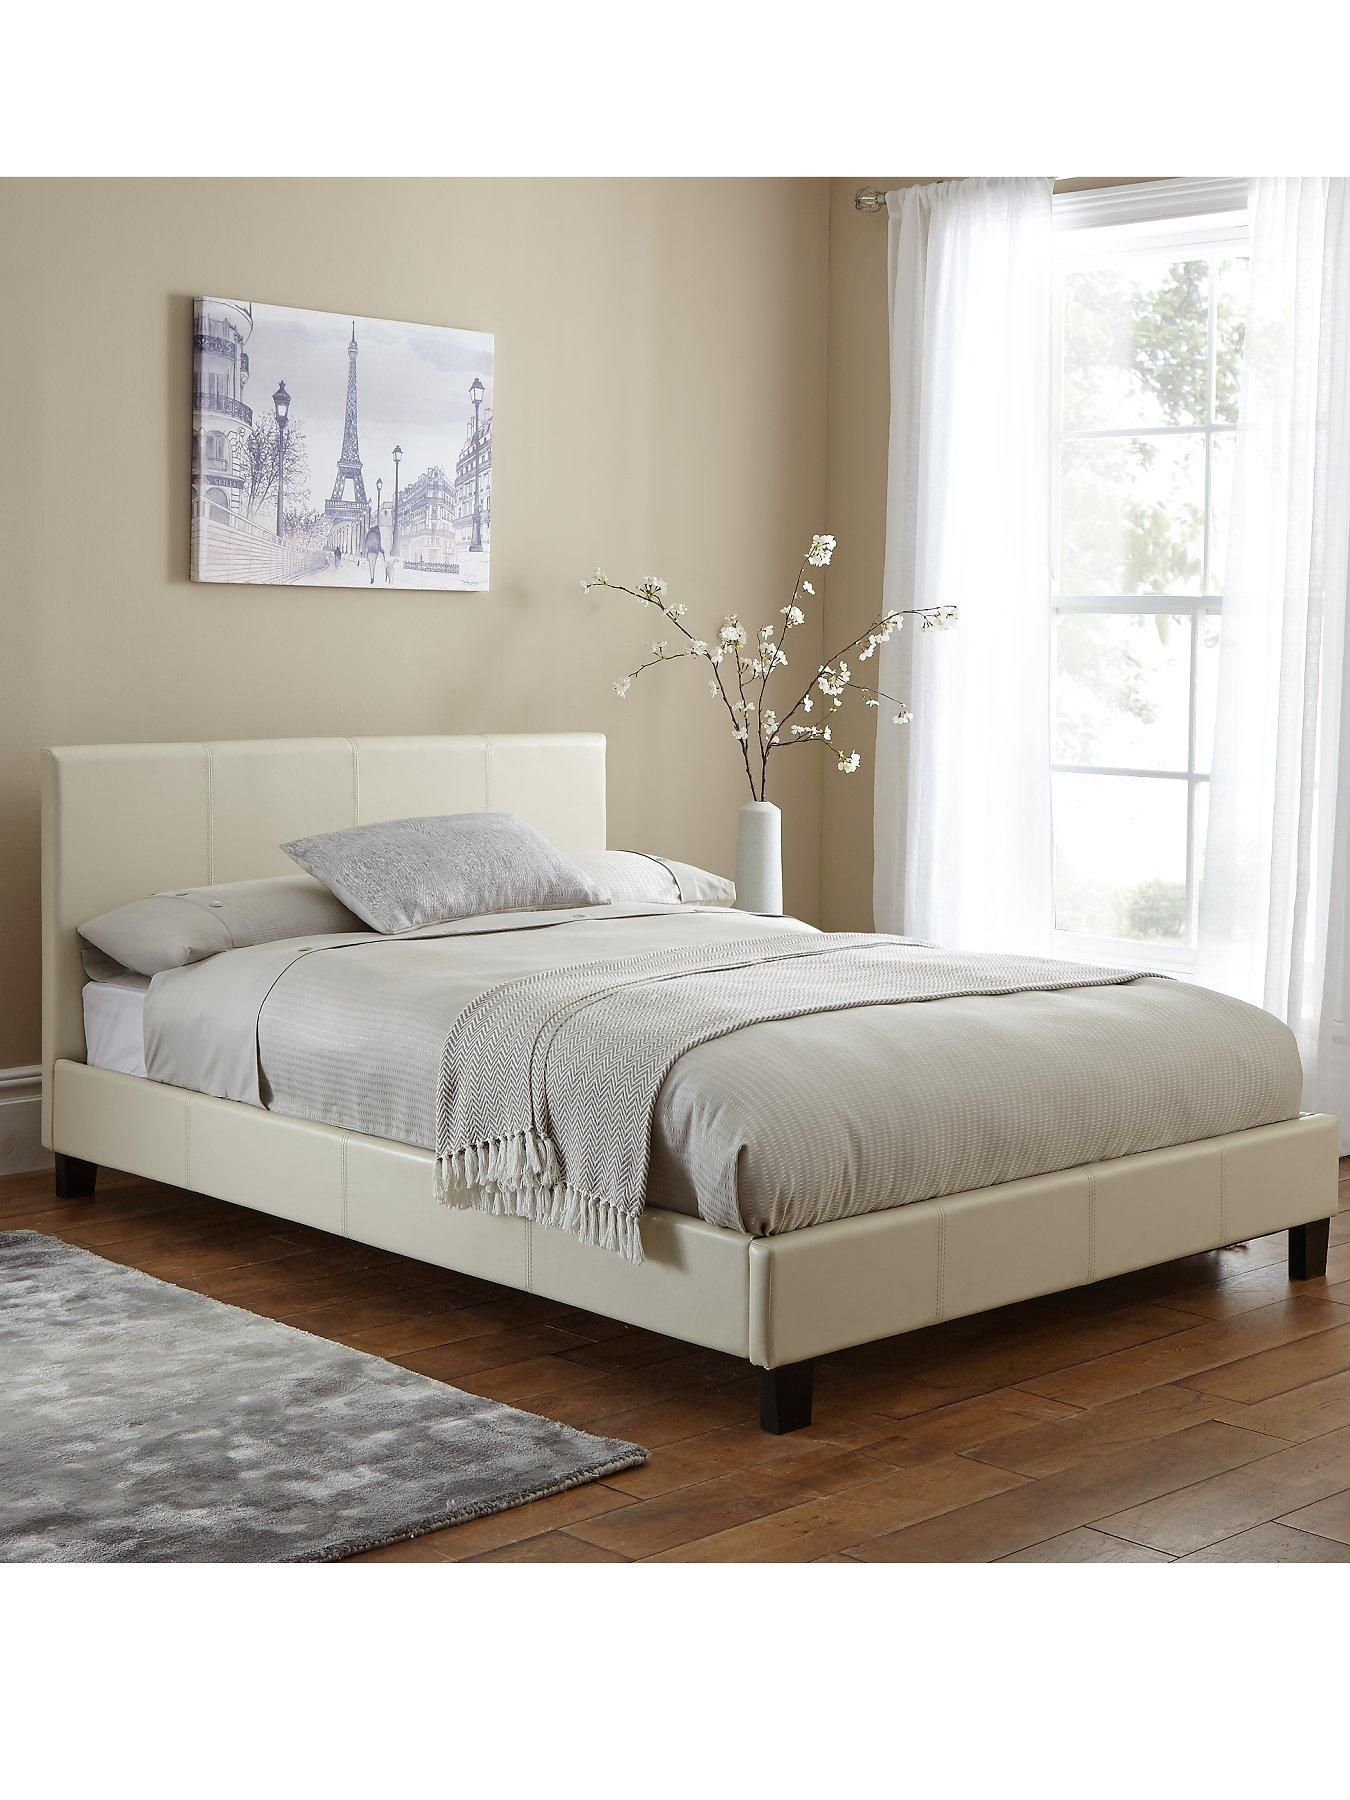 Esme Faux Leather Bed Frame And Mattress Options Buy And Save